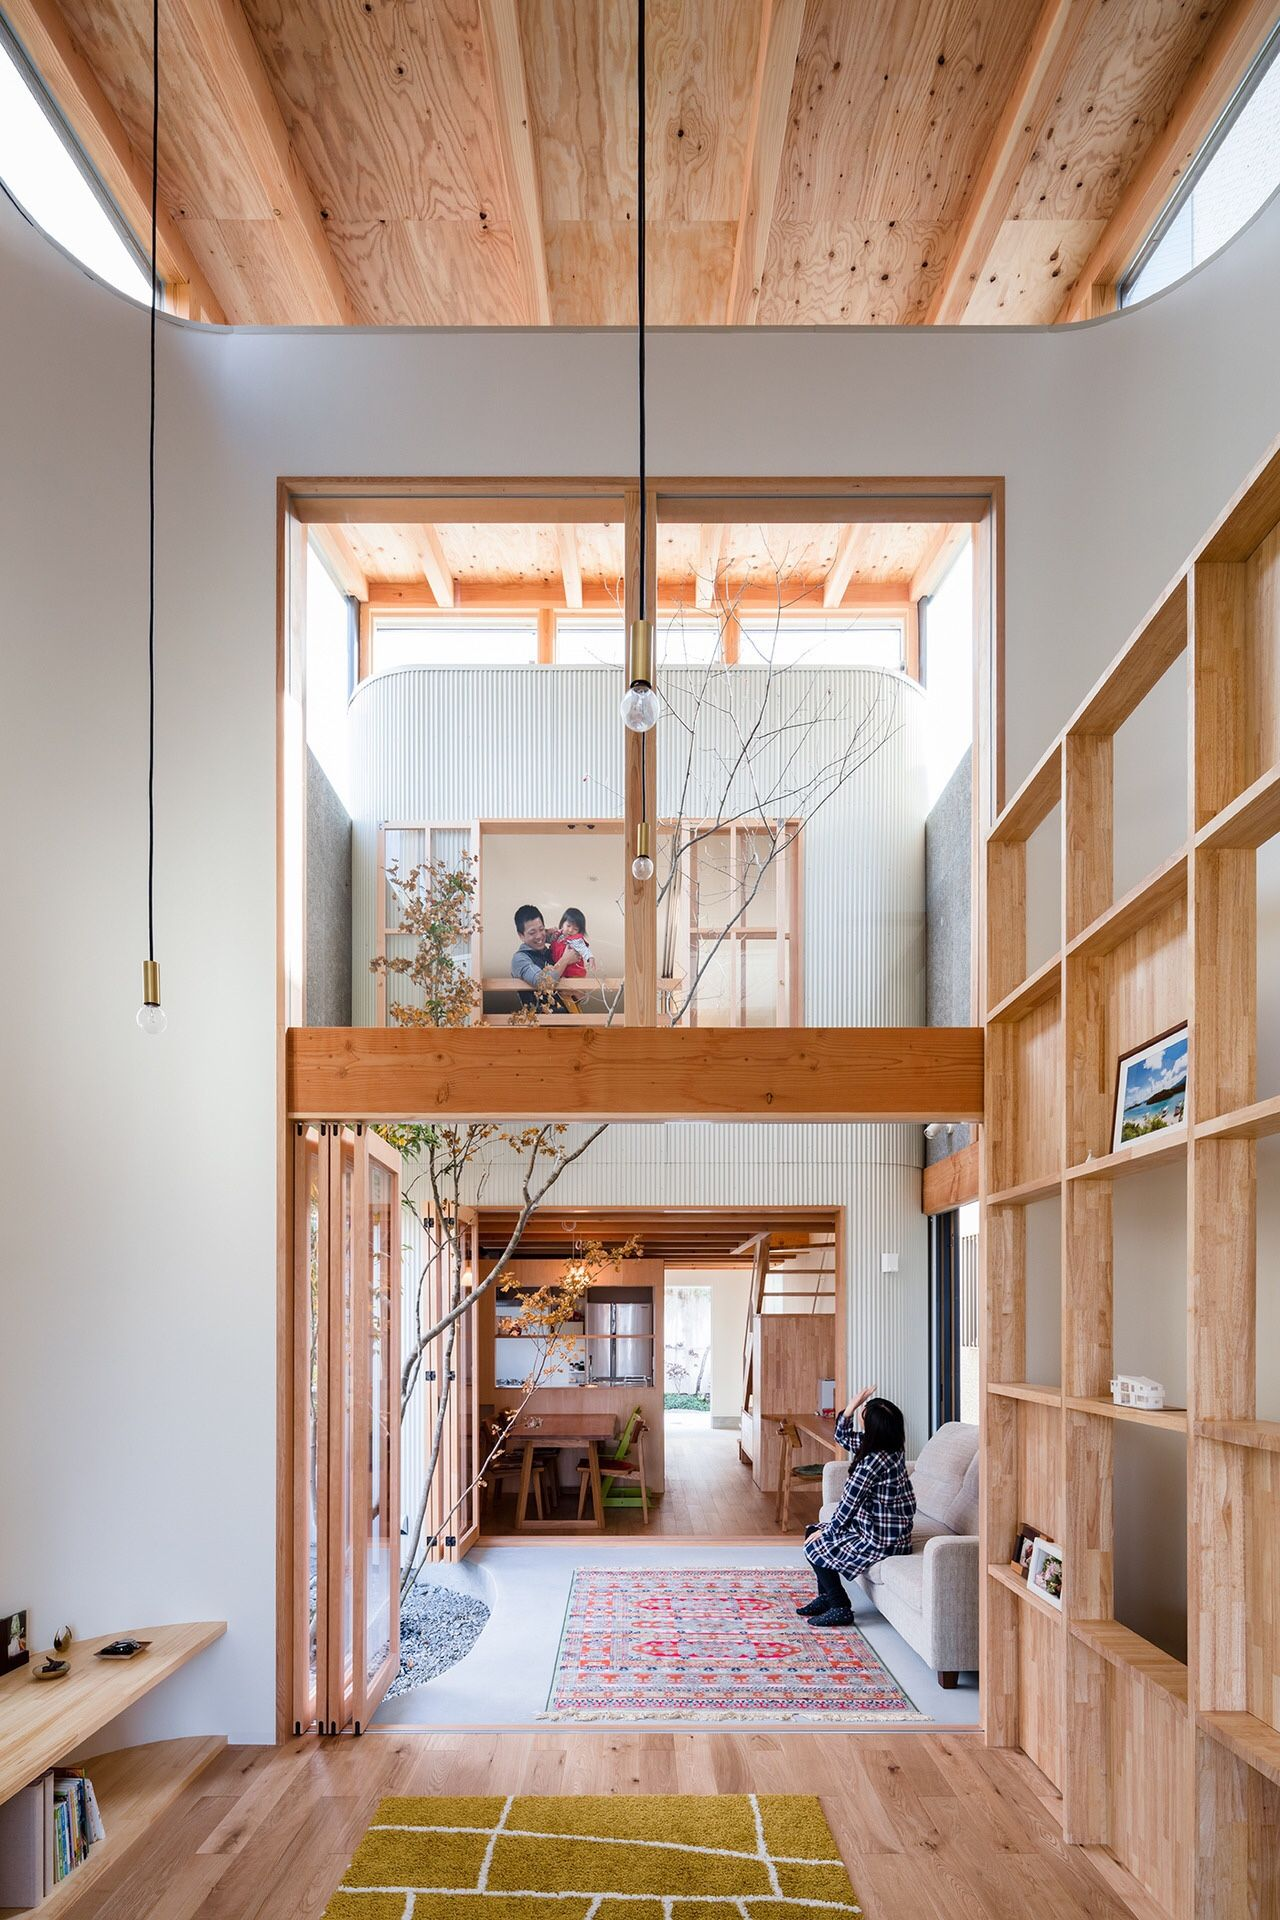 Innenarchitektur wohnzimmer grundrisse the most important thing in the world is family and love